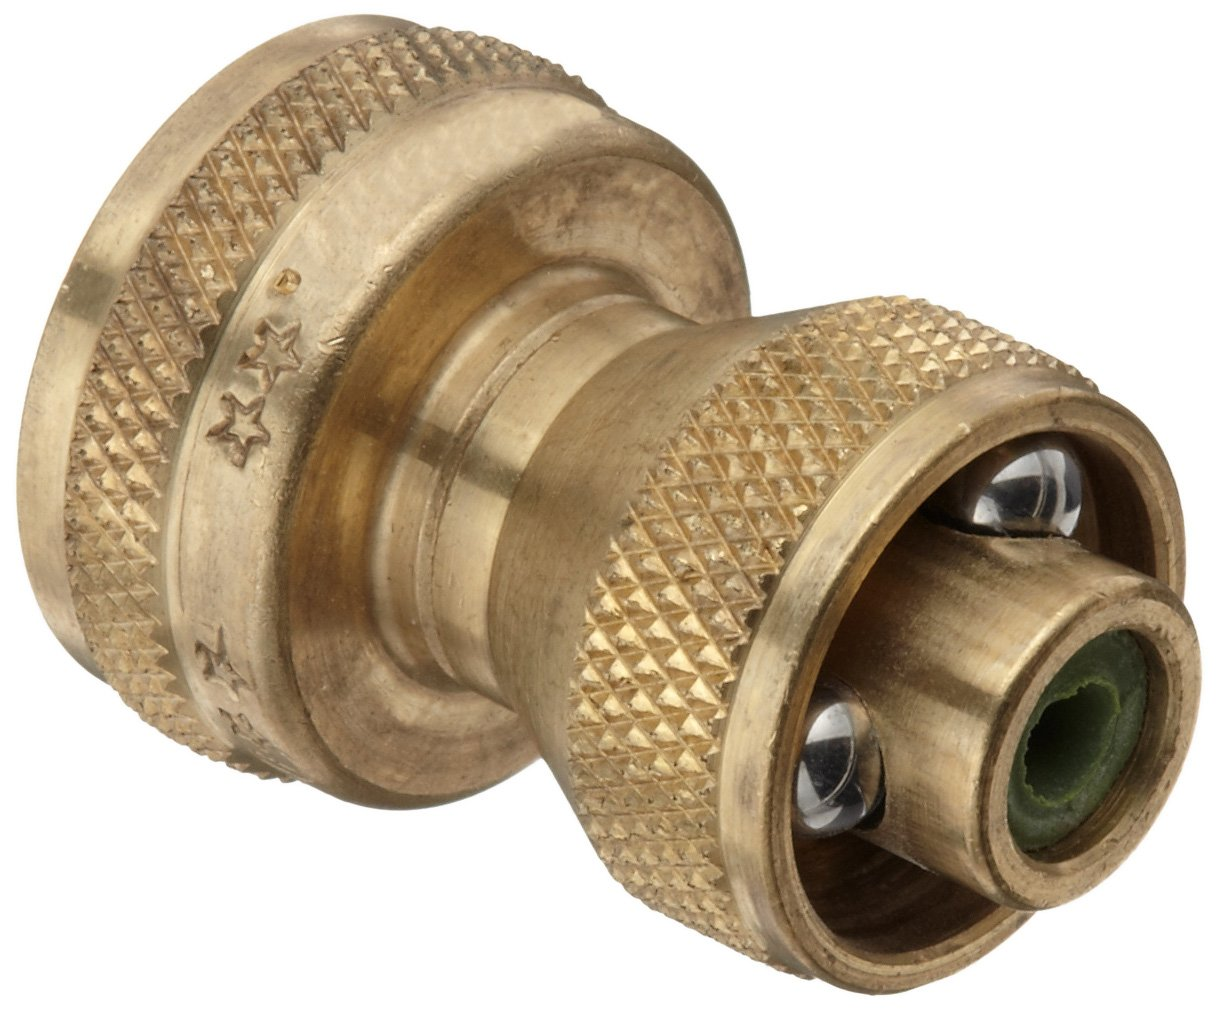 Dixon AAPN75GHT Brass Adjust A Power Nozzle, 3/4'' GHT, 100 psi Pressure